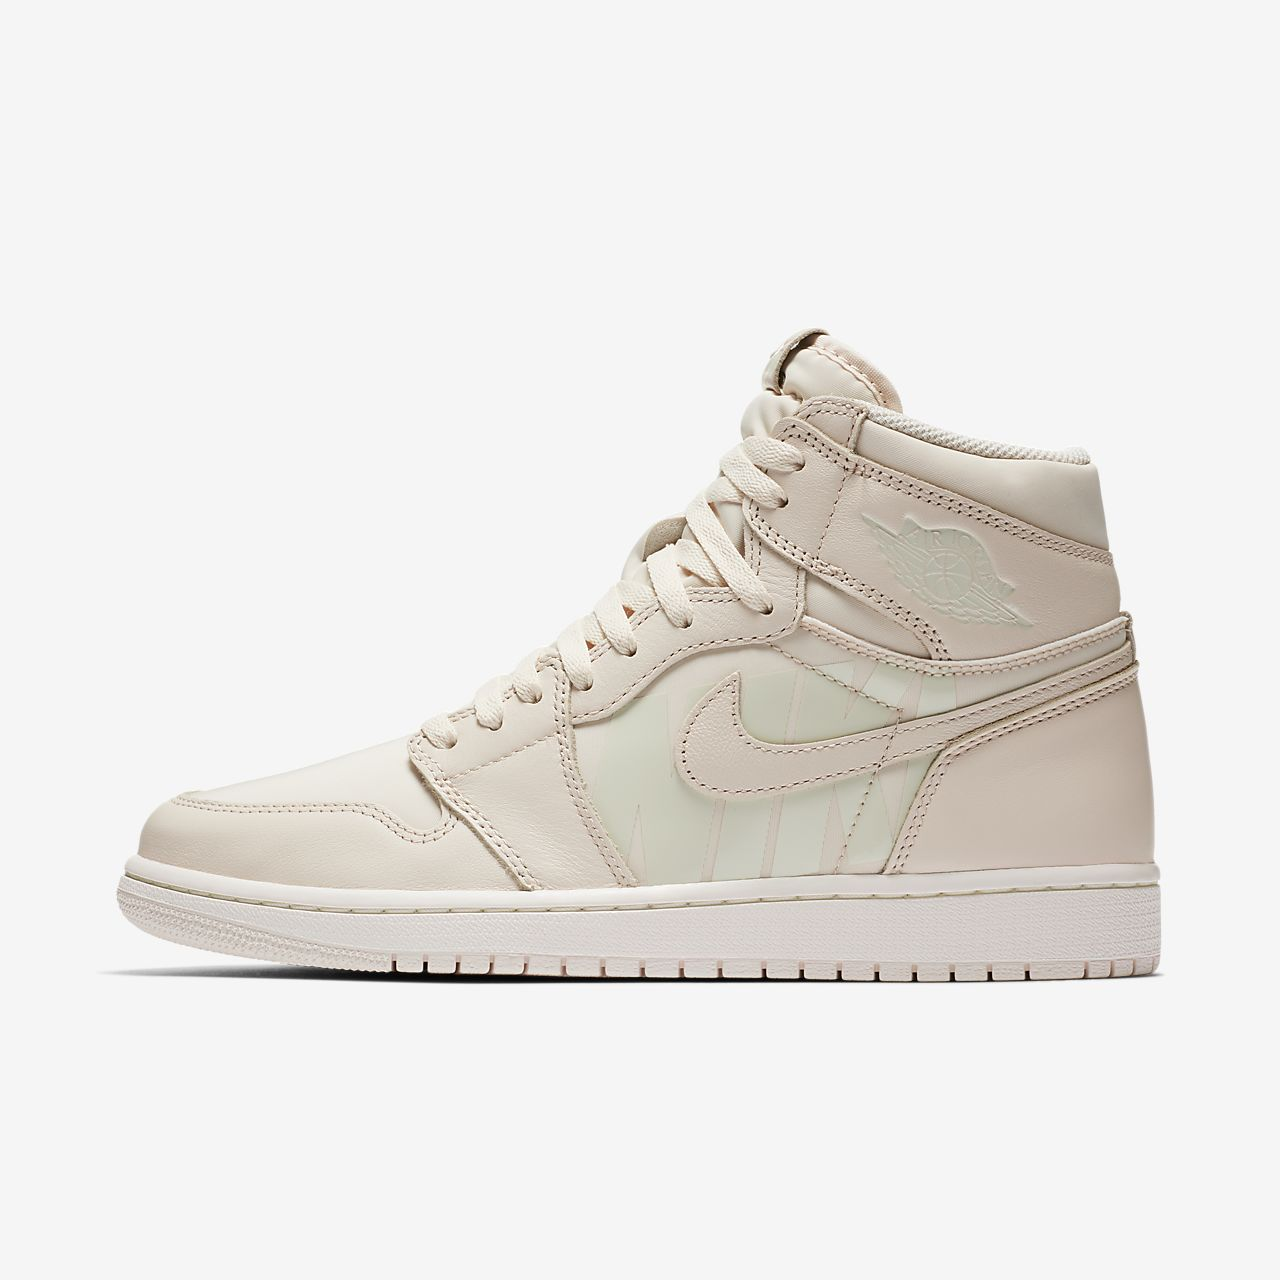 Air Jordan 1 Retro High OG Shoe. Nike.com 8c498edd6